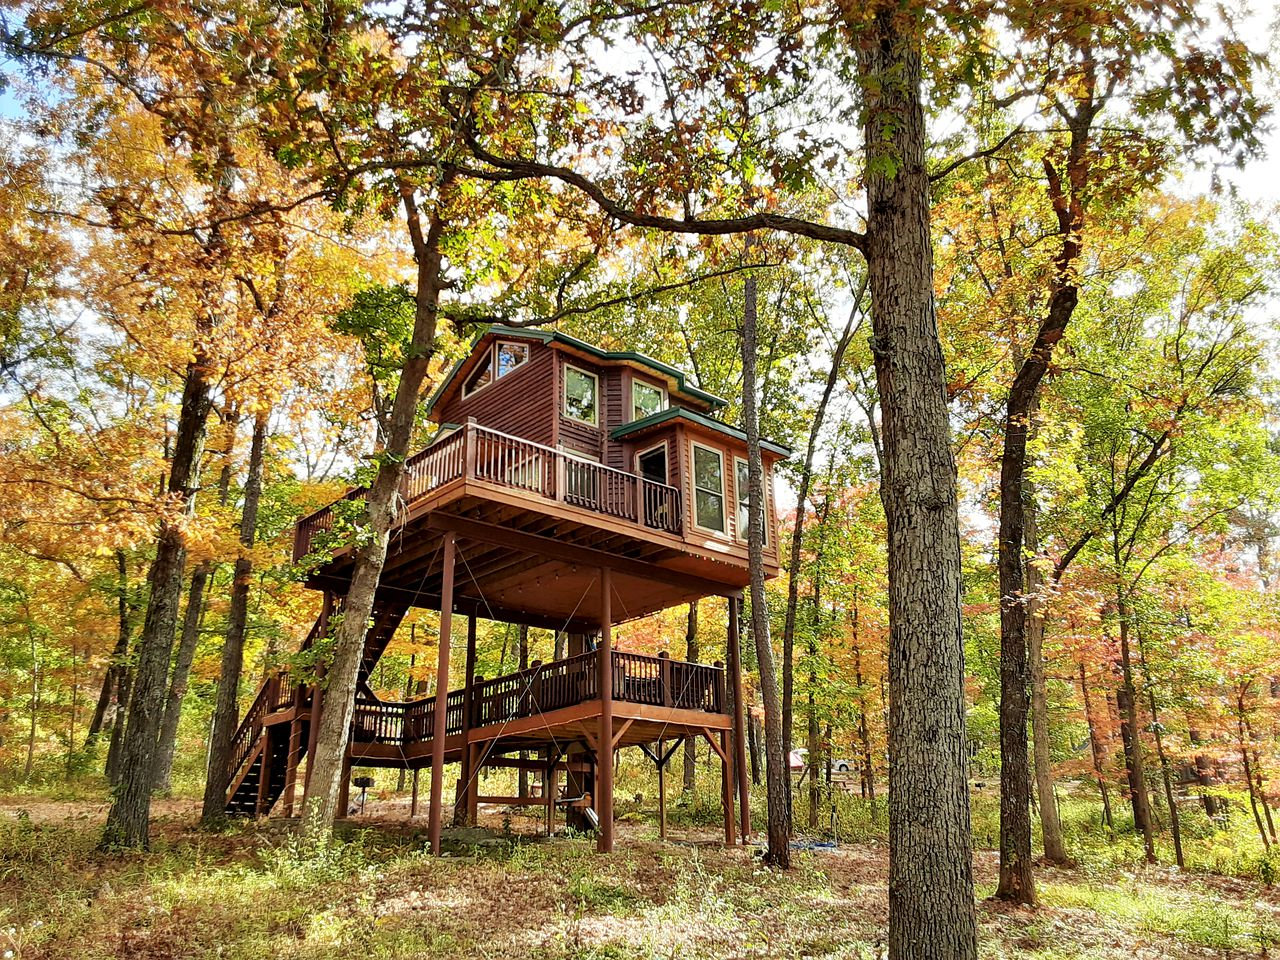 Tree house glamping in Missouri